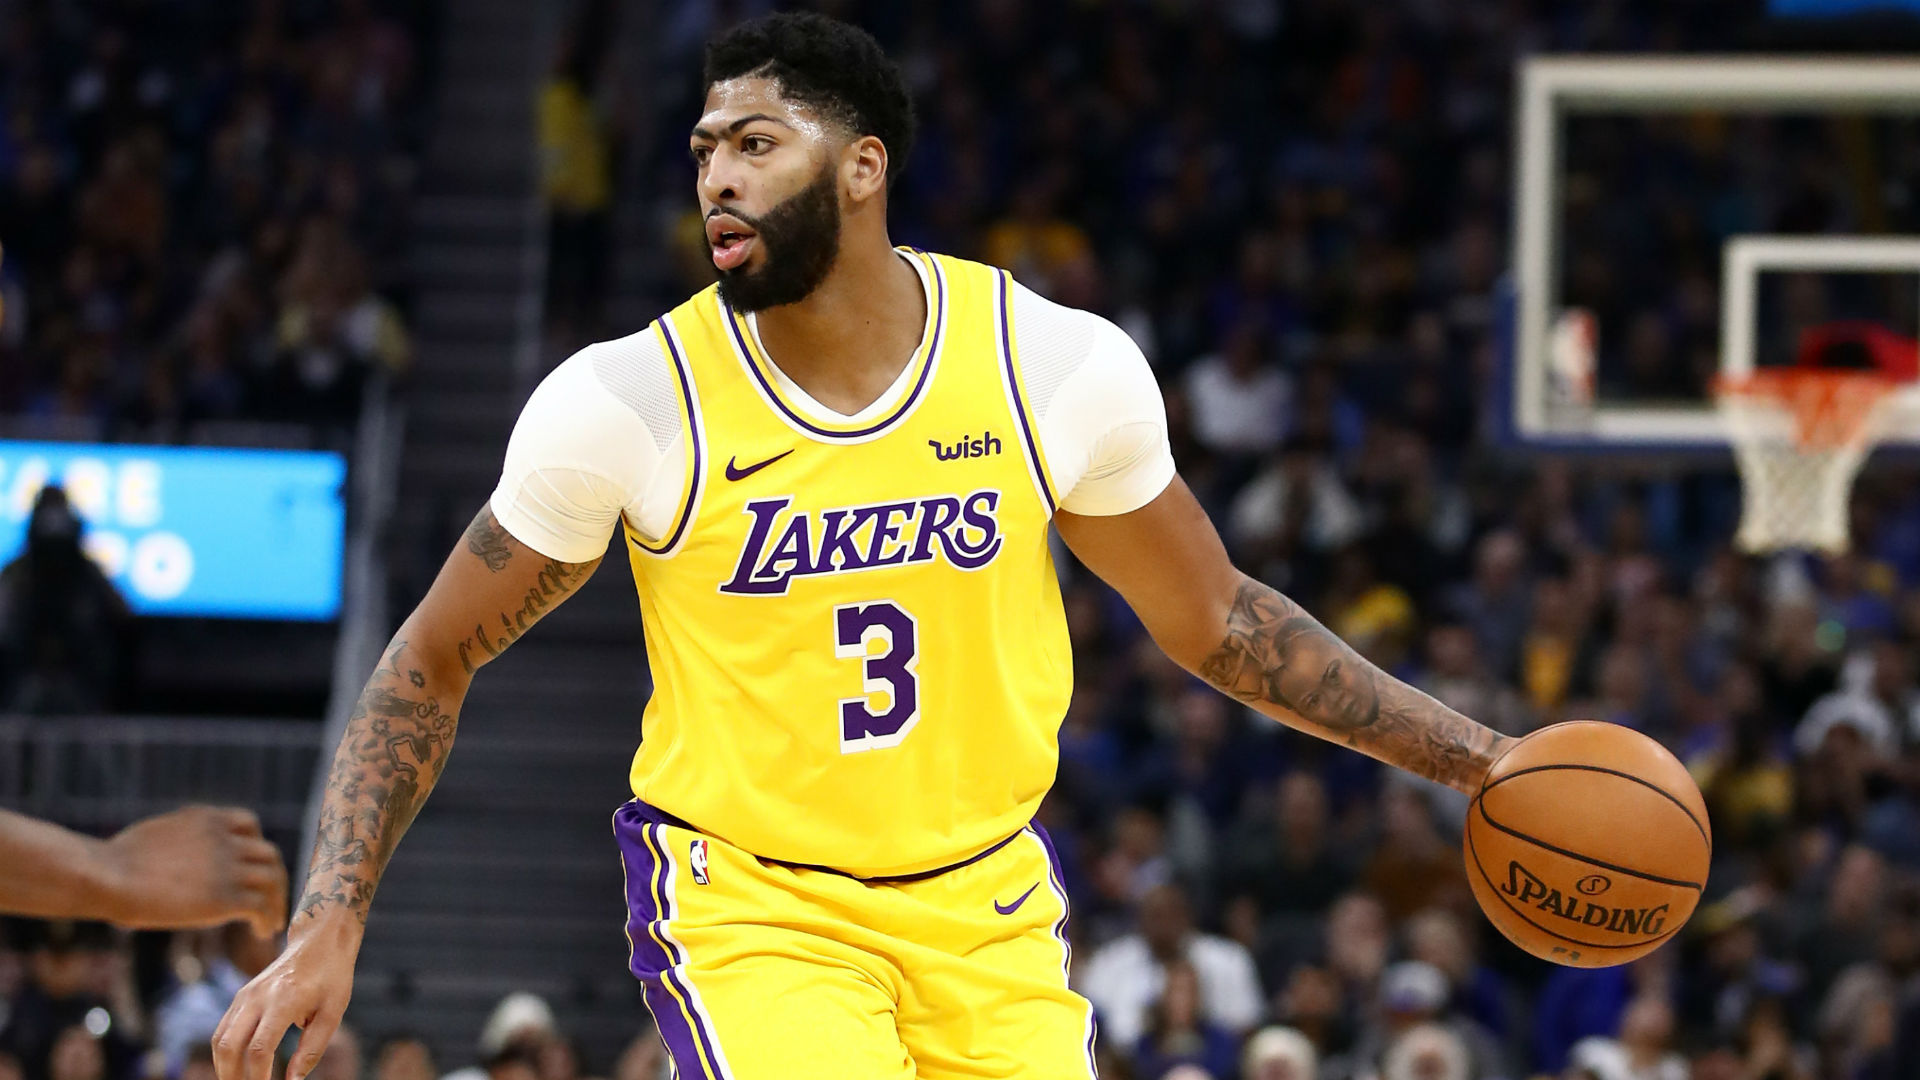 Anthony Davis leads Los Angeles Lakers over Golden State Warriors in preseason debut